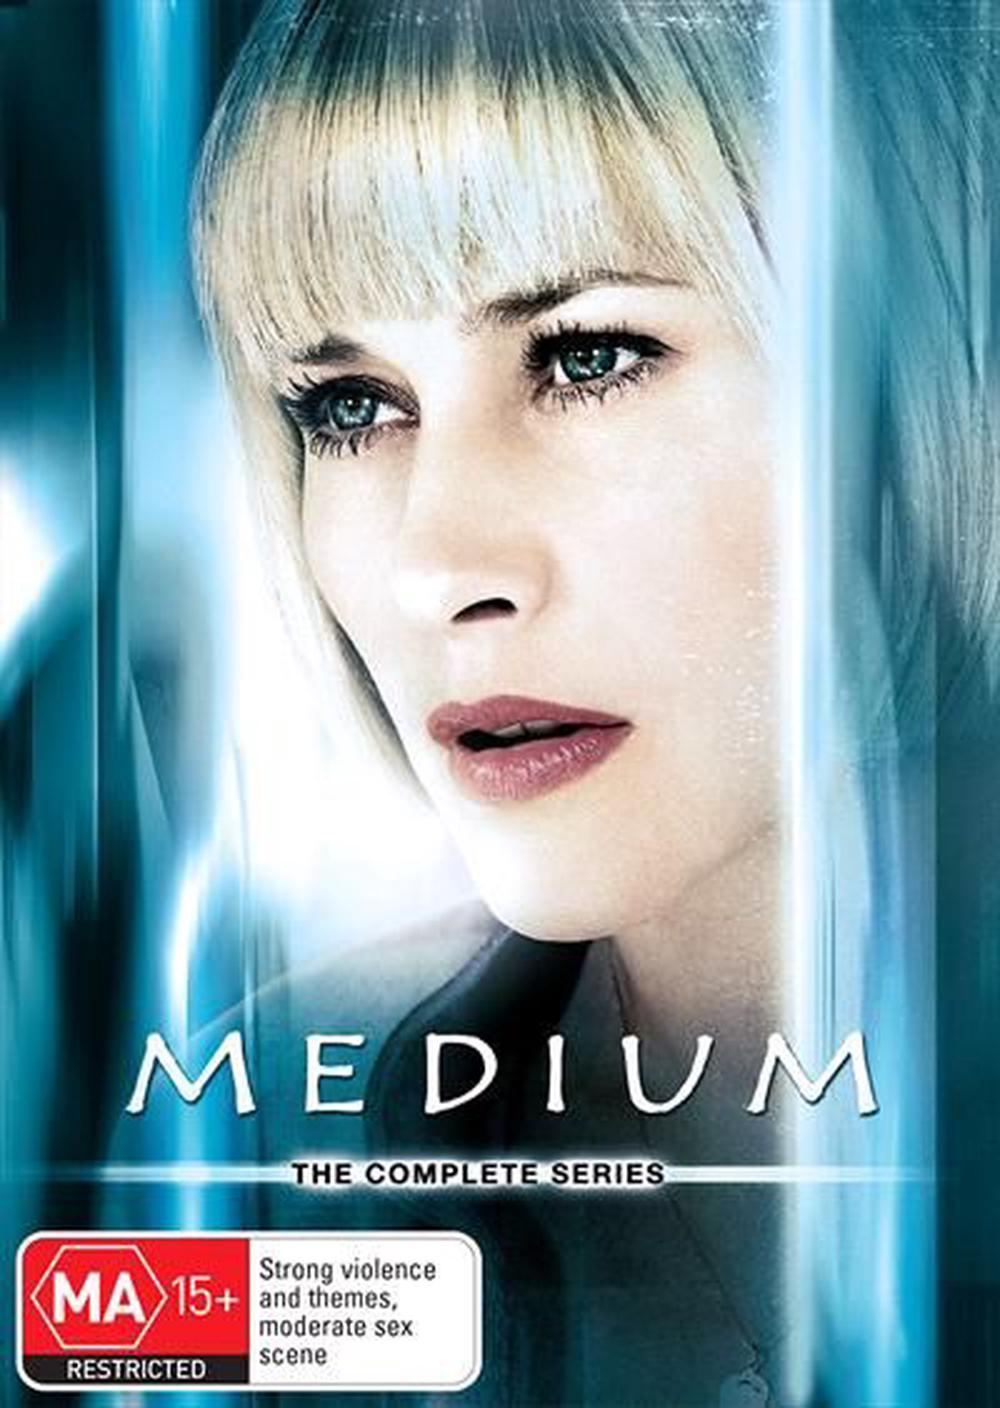 Medium : Season 1-7 | Boxset